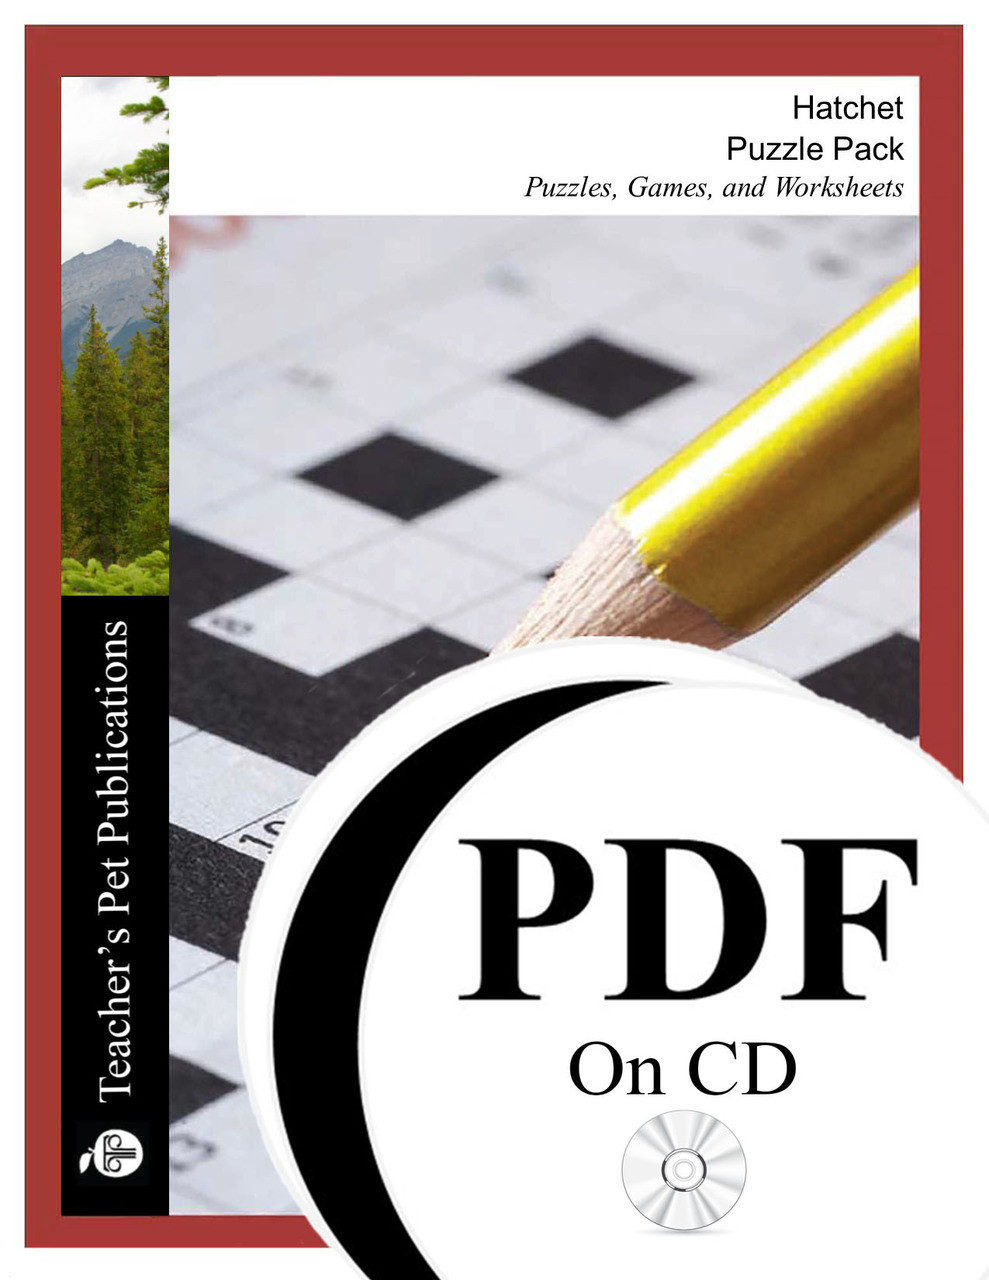 Hatchet Puzzle Pack Worksheets, Activities, Games (PDF on CD)